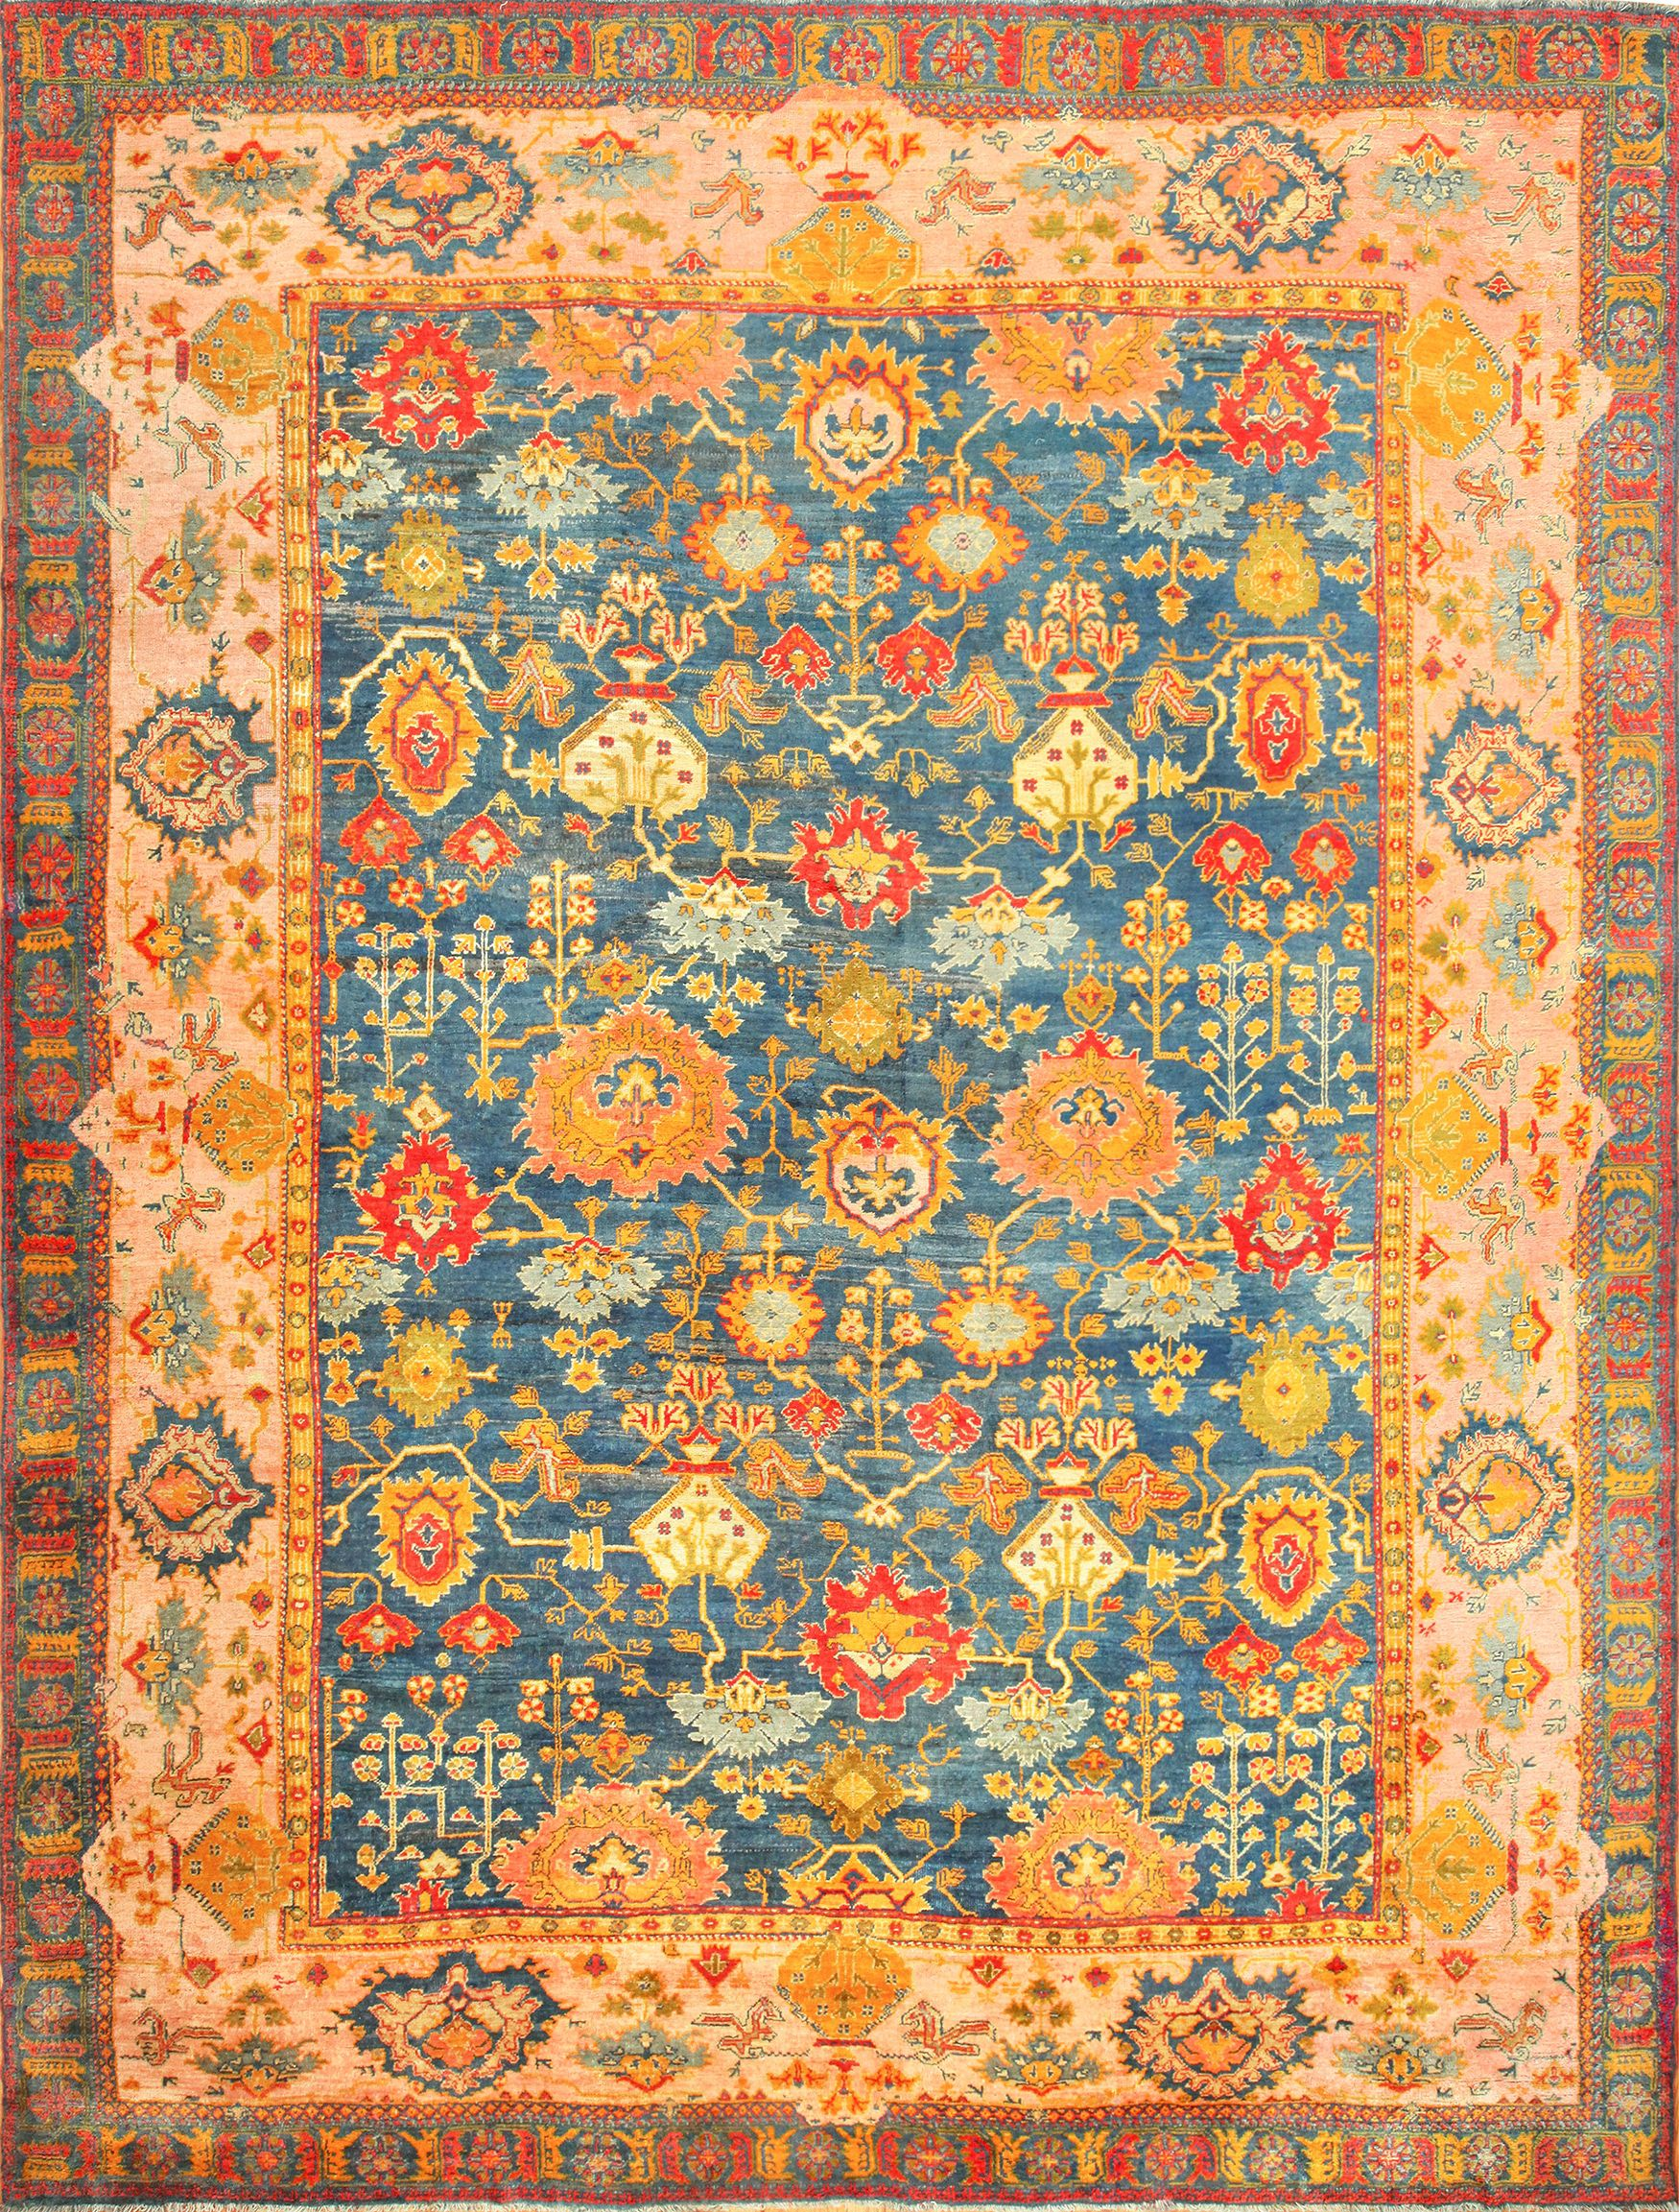 oushak rugs antique blue background turkish oushak rug 49108 nazmiyal RJSVZQB